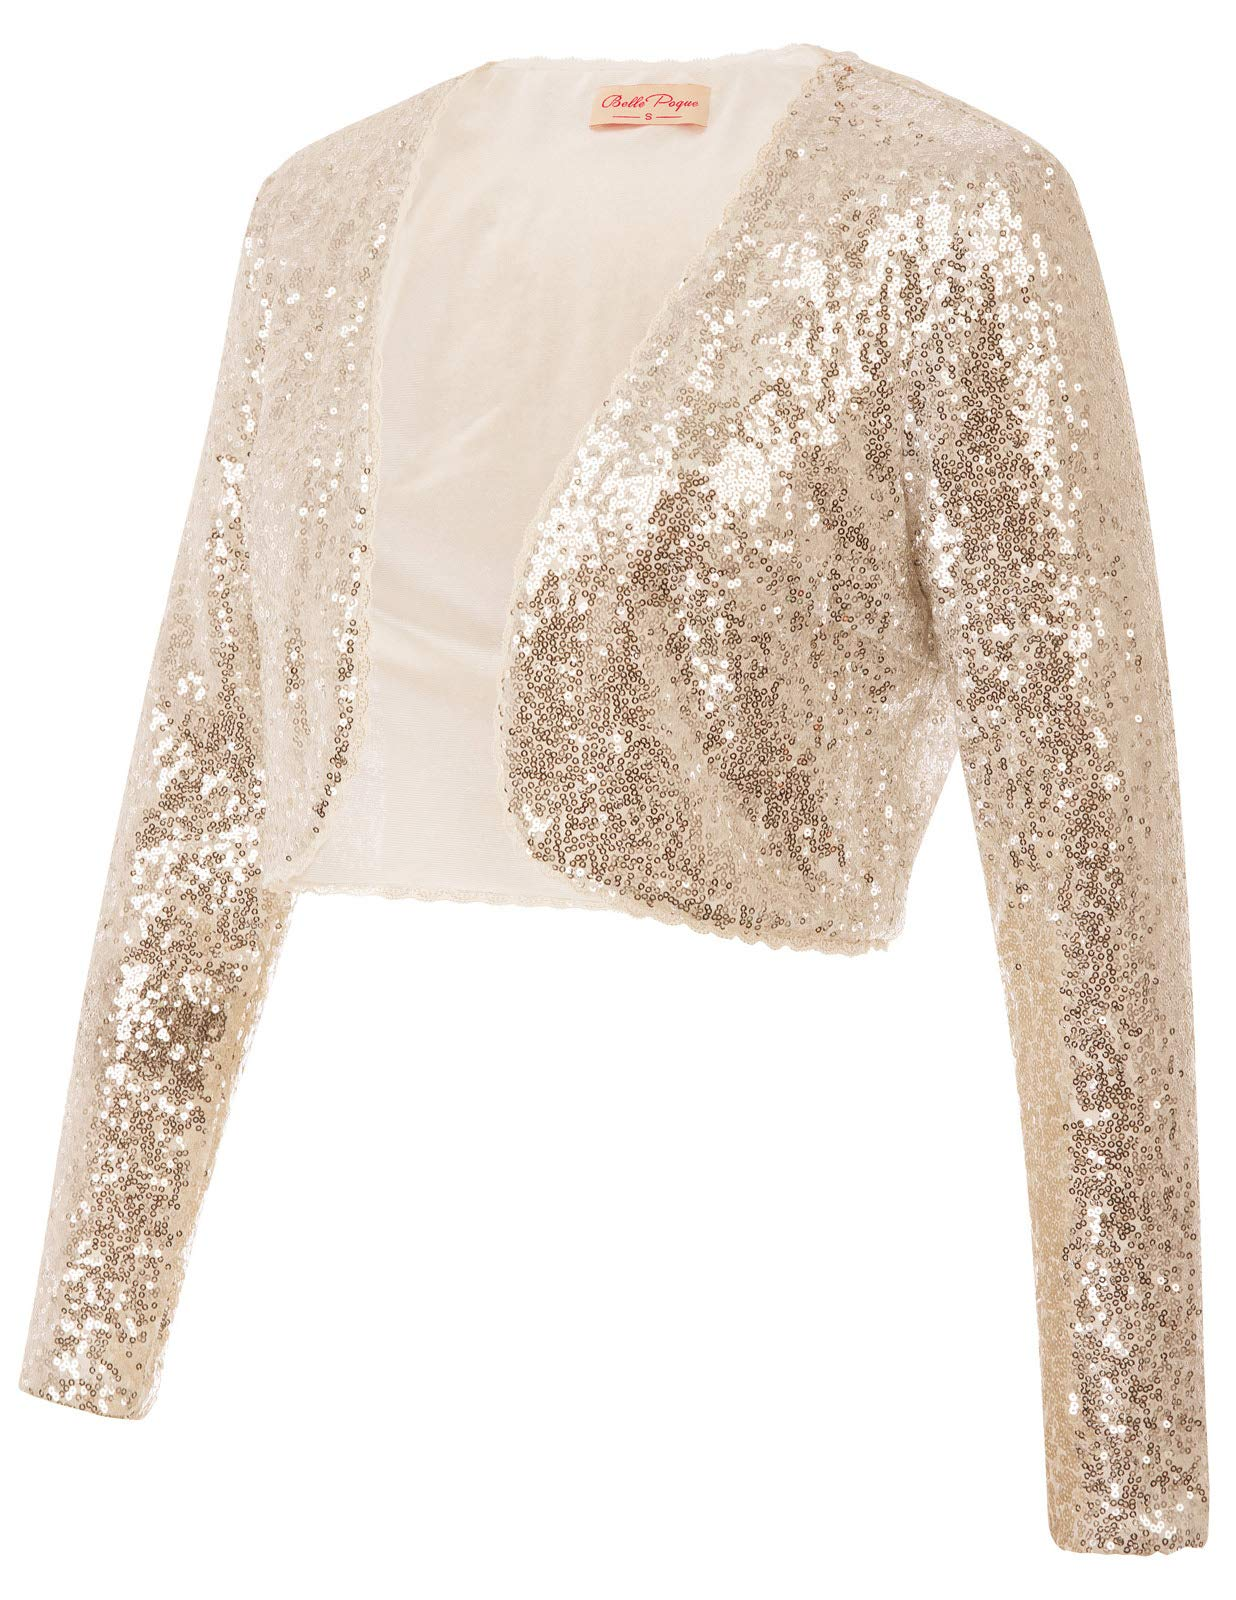 Fancy Night Out Dress Shrug for Women Long Sleeve(L,Gold)